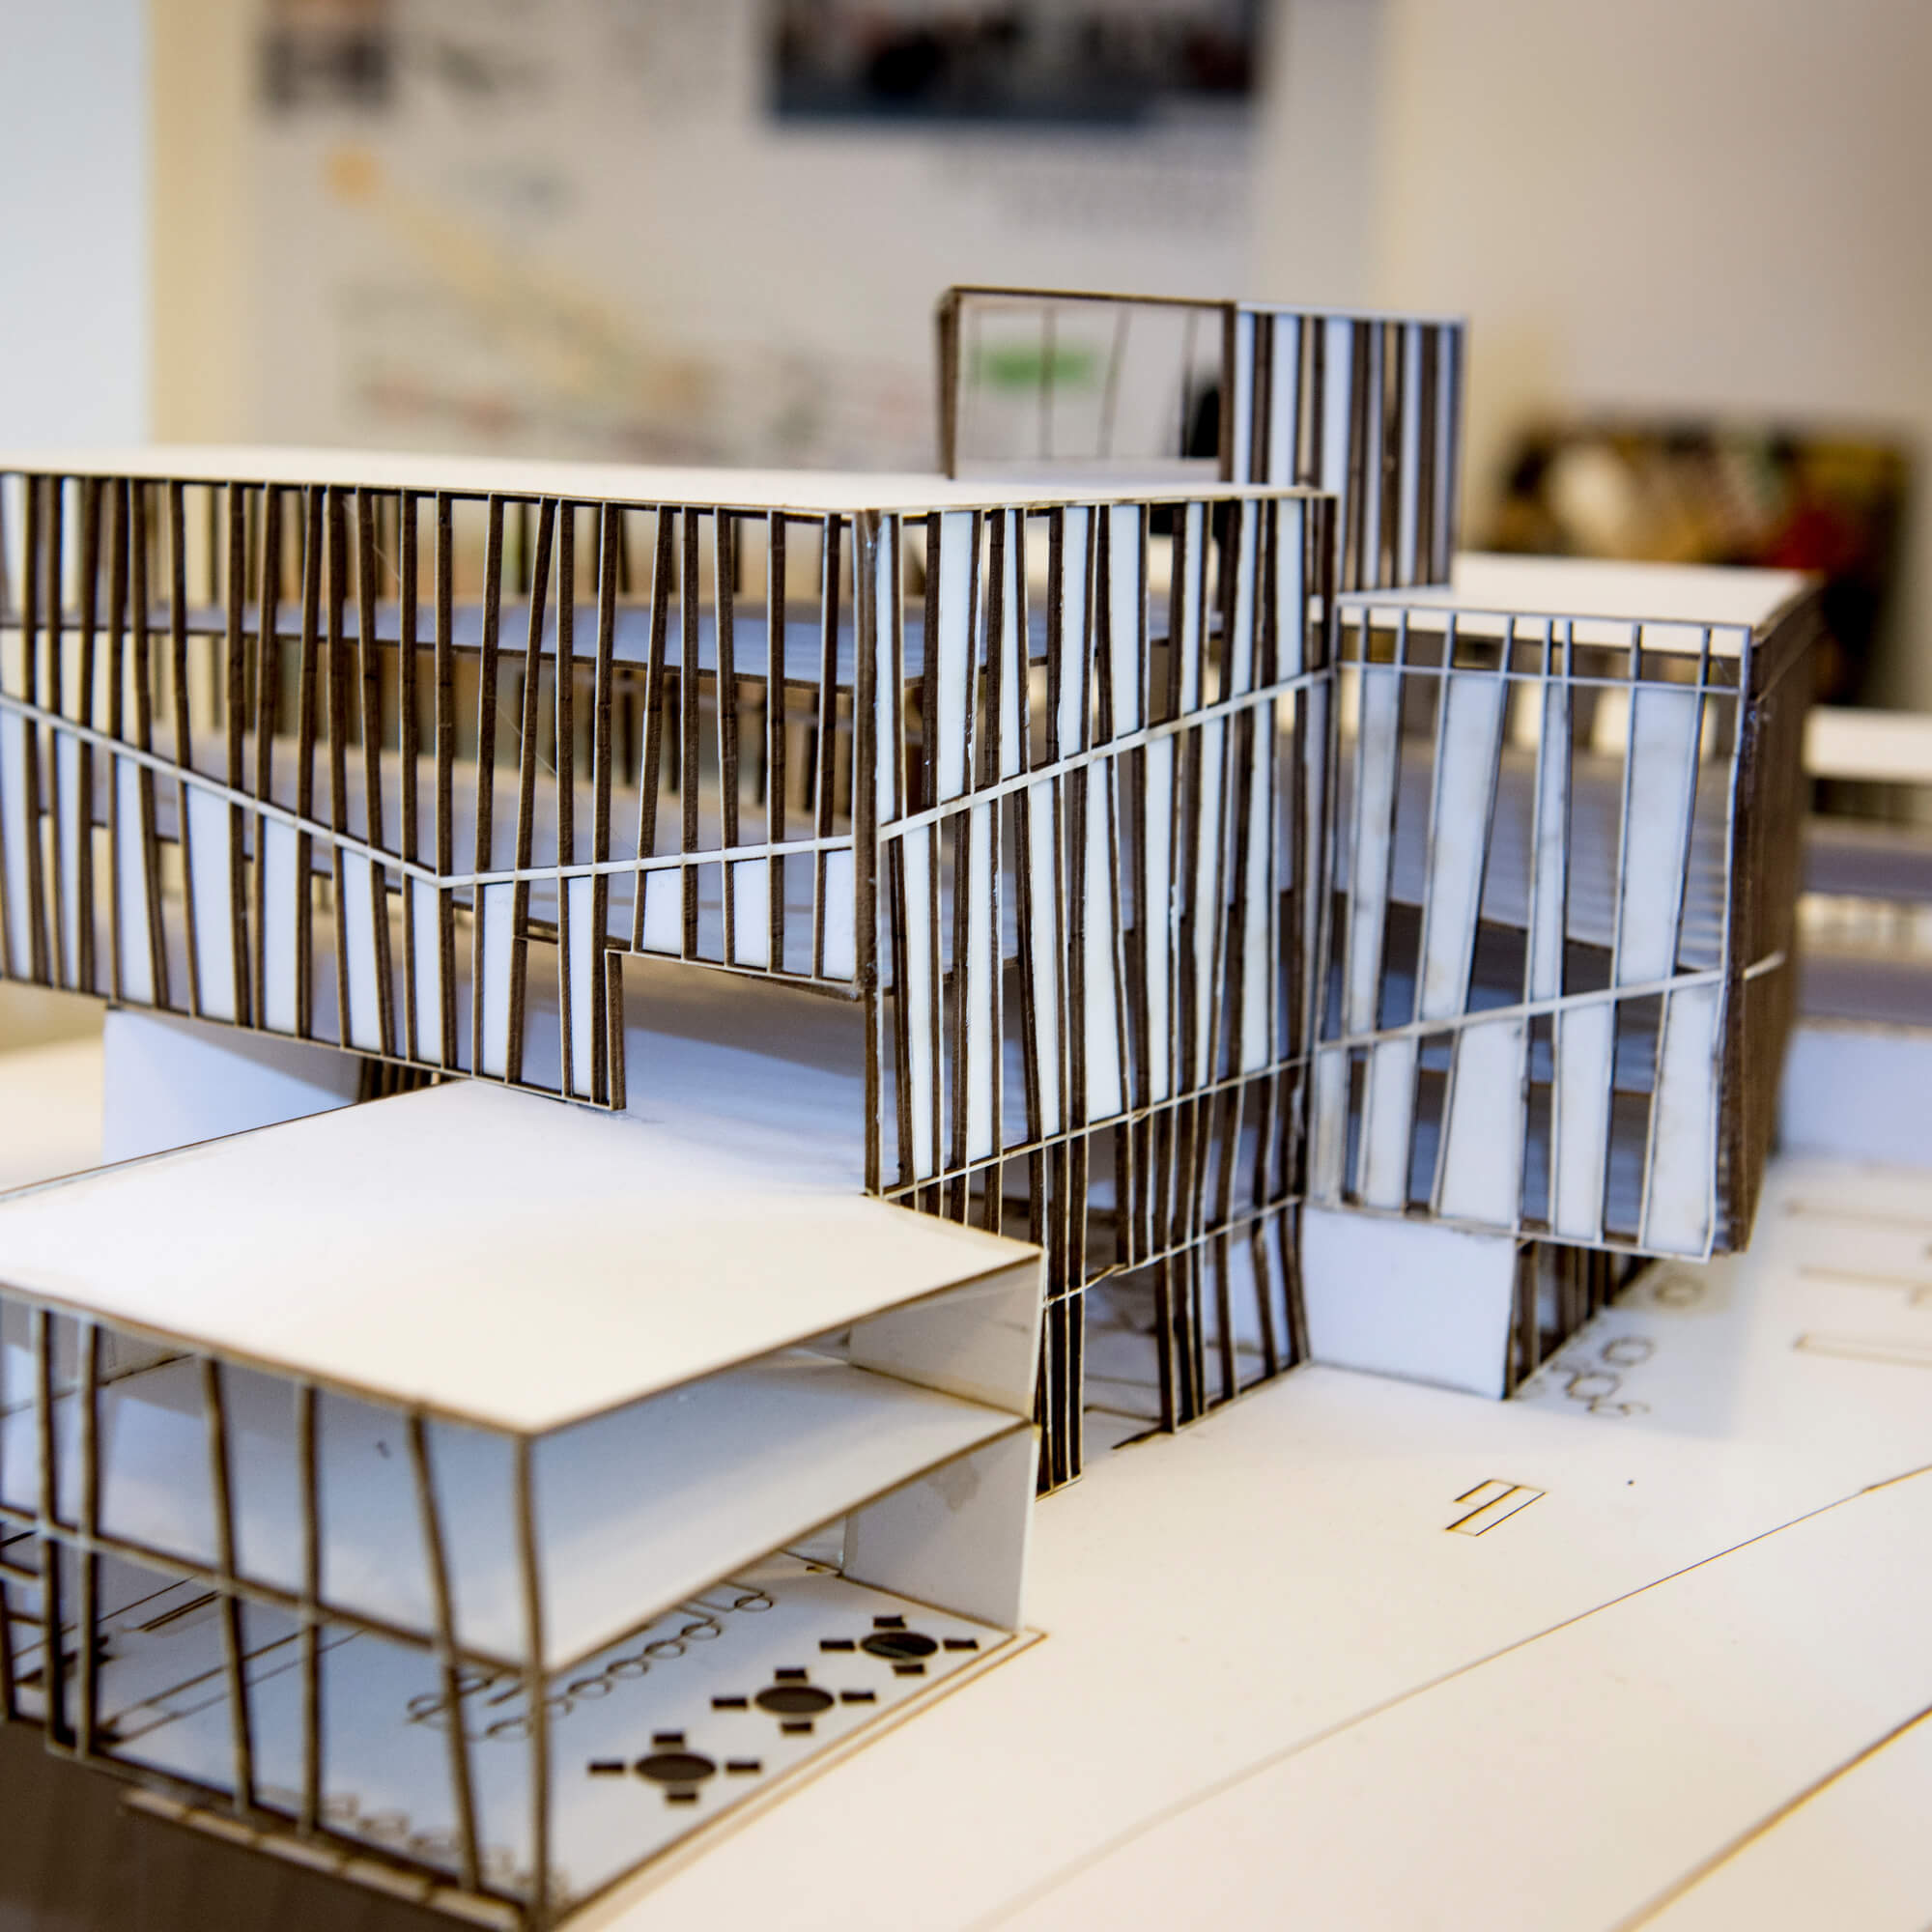 A close up of an architectural model